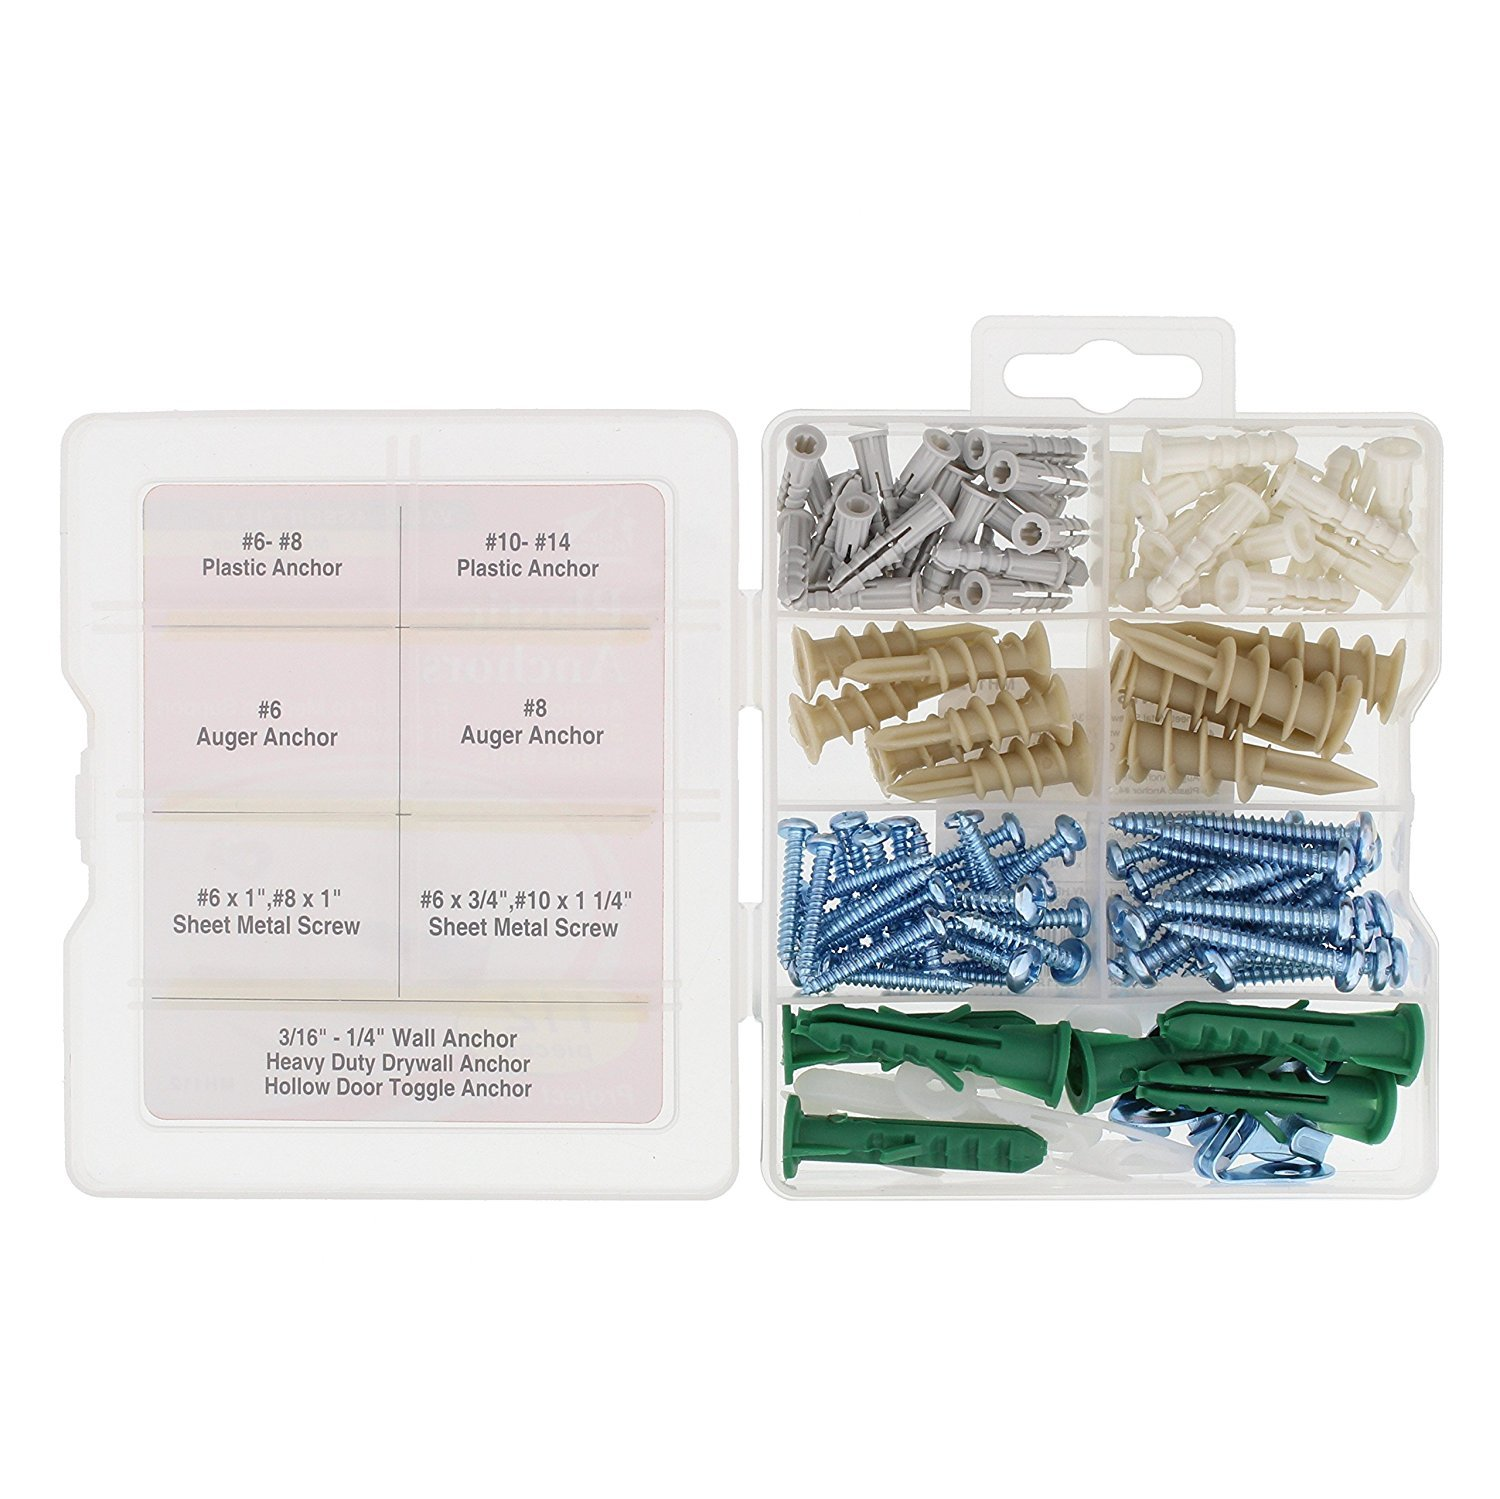 Screws Wall Anchor Hooks MG-S Drywall and Masonry Anchor Assortment Kit 112 Pieces and Hollow-door Toggle Anchors